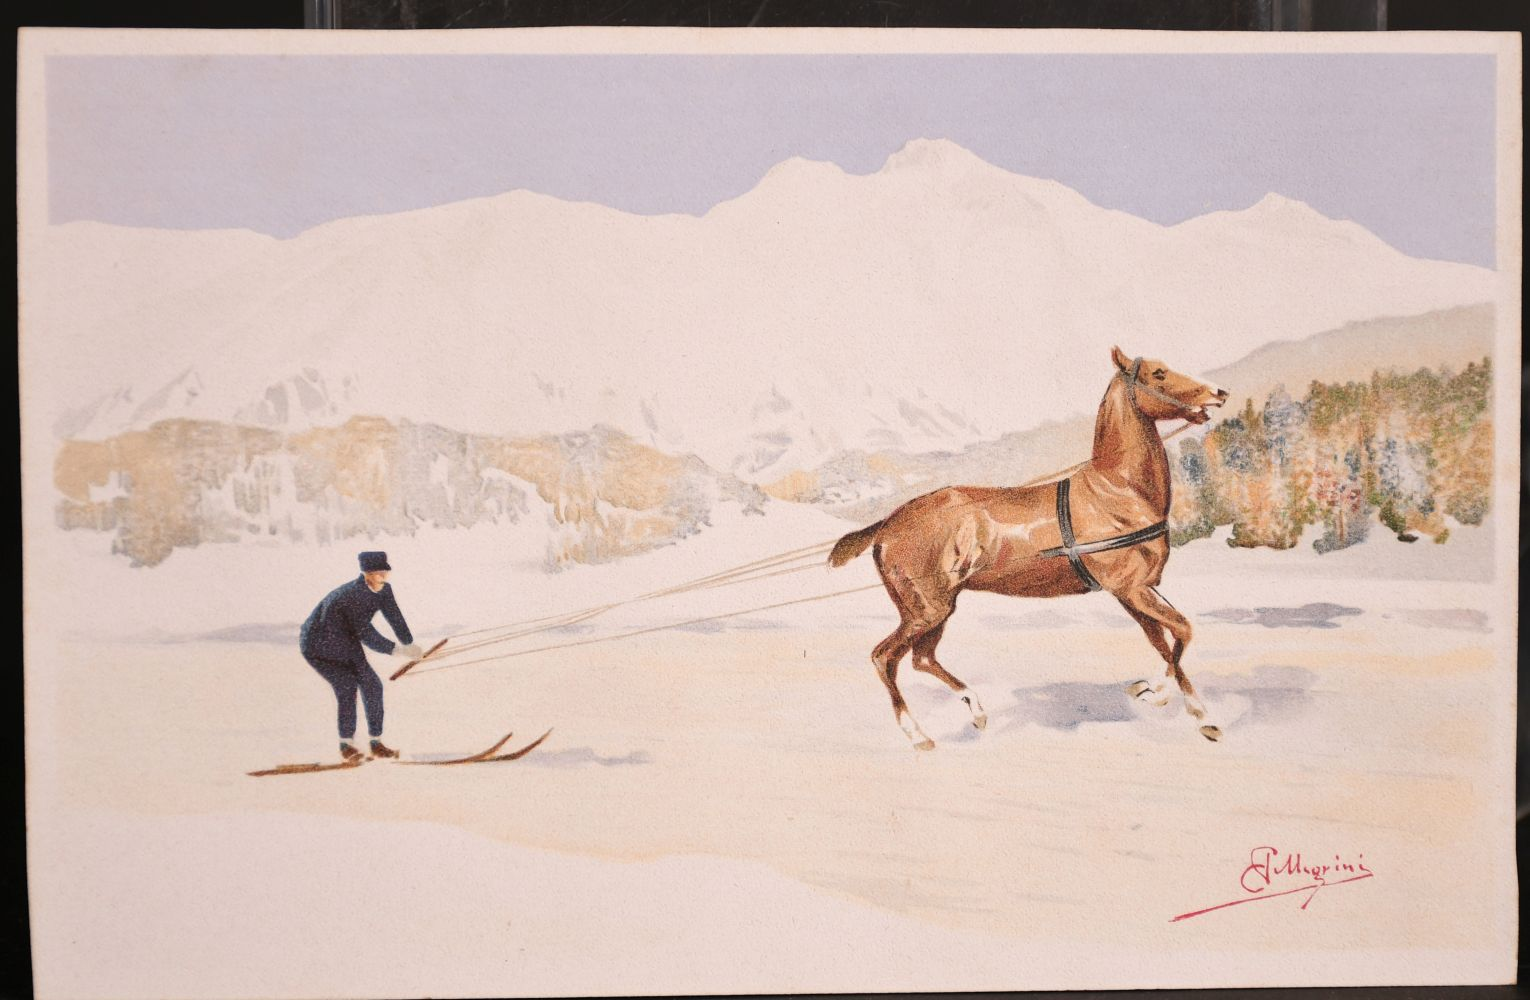 Carlo Pellegrini (1839-1889) Italian, 'Skijoring', A figure on skis being pulled behind a horse, - Image 2 of 4